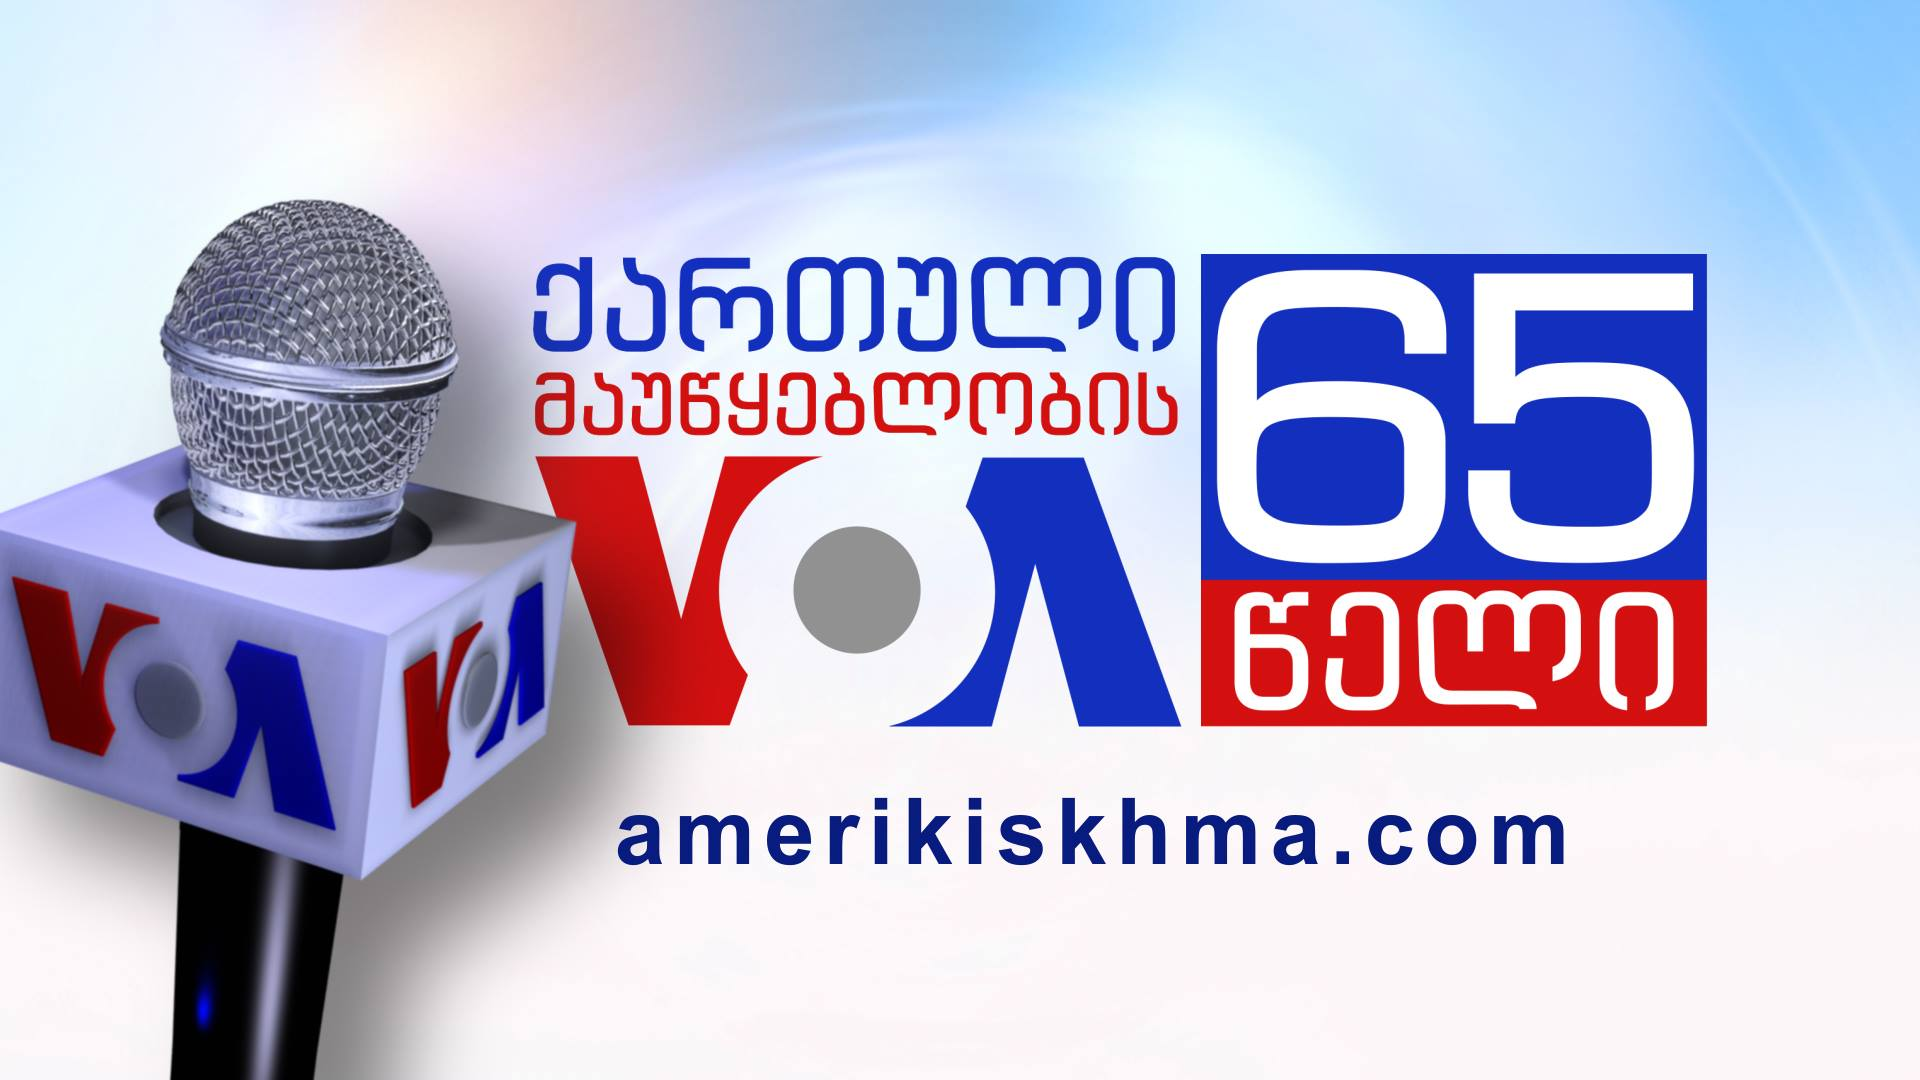 The Georgian Association Congratulates the Georgian Service of the Voice of America on its 65th anniversary